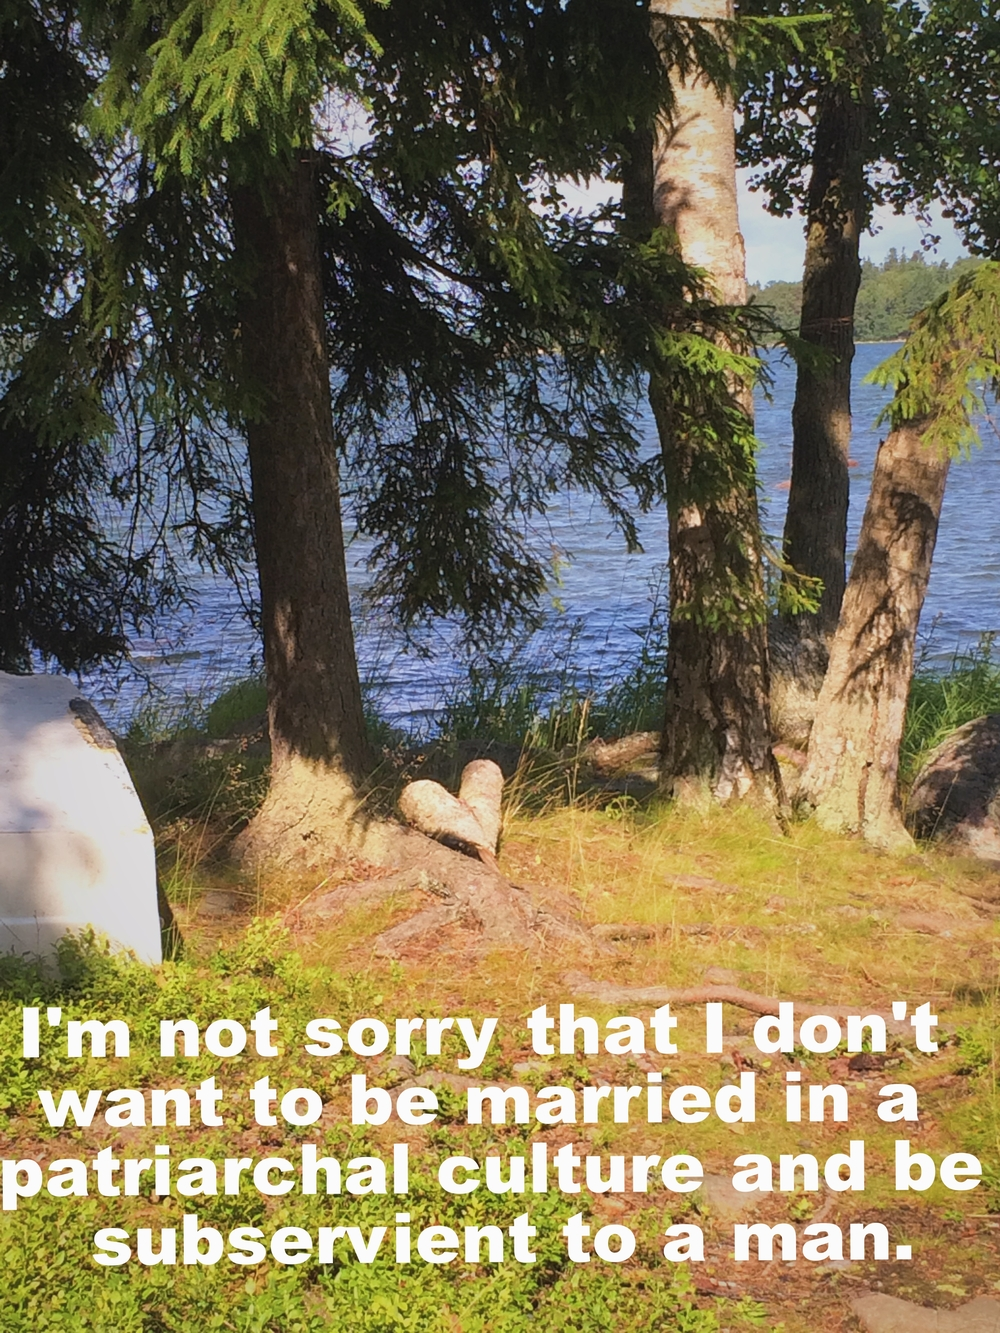 "Sarah April 26 2016 Grass and tree roots foreground an image of evergreen trees that overlook a lake. There is a heart-shaped rock or root at the base of one of the trees. ""I'm not sorry that I don't want to be married ina a patriarchal culture and be subservient to a man"" is overlaid."